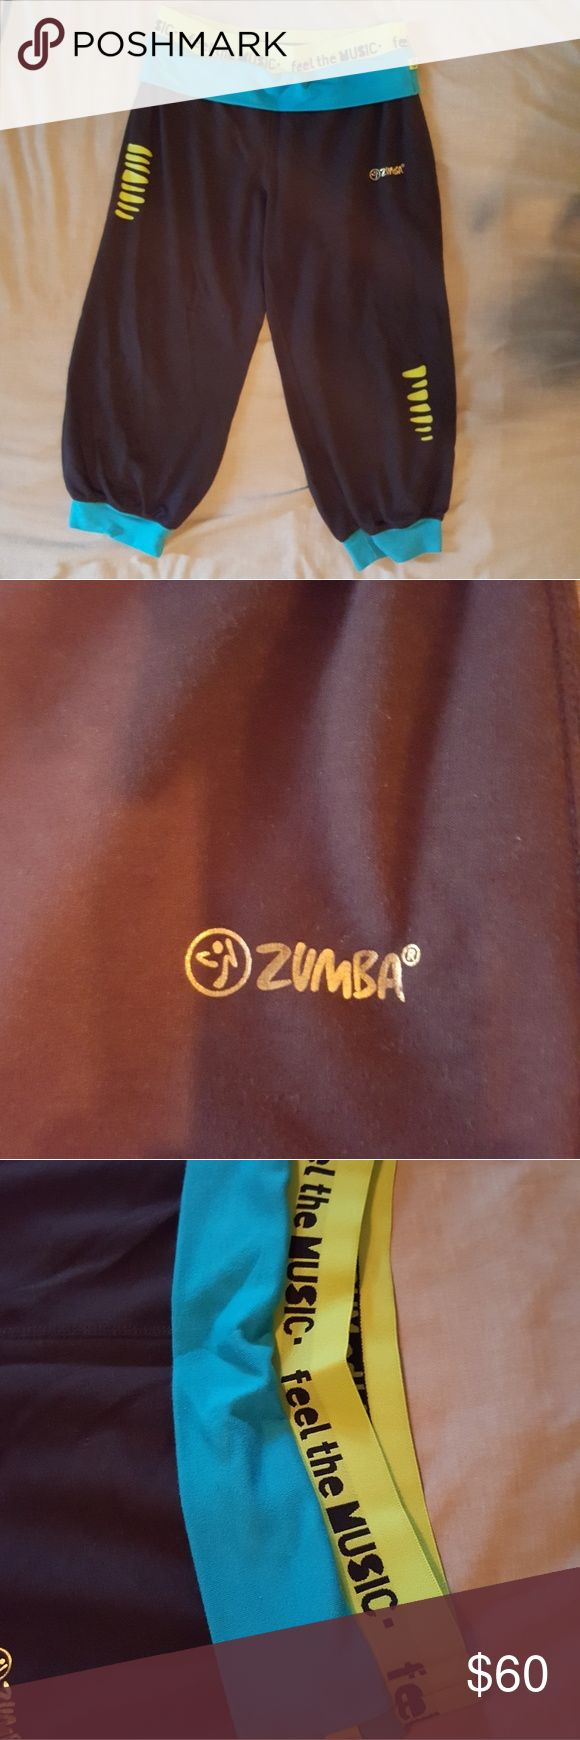 "Zumba Black & Blue with Neon Yellow Pants Zumba Black & Blue with Neon Yellow Pants - Super comfy! - BRAND NEW! NEVER WORN! - Neon Blue & Neon Yellow details with ""Feel The Music"" - Knee High.  - Stretchy belt. Zumba Fitness Pants"